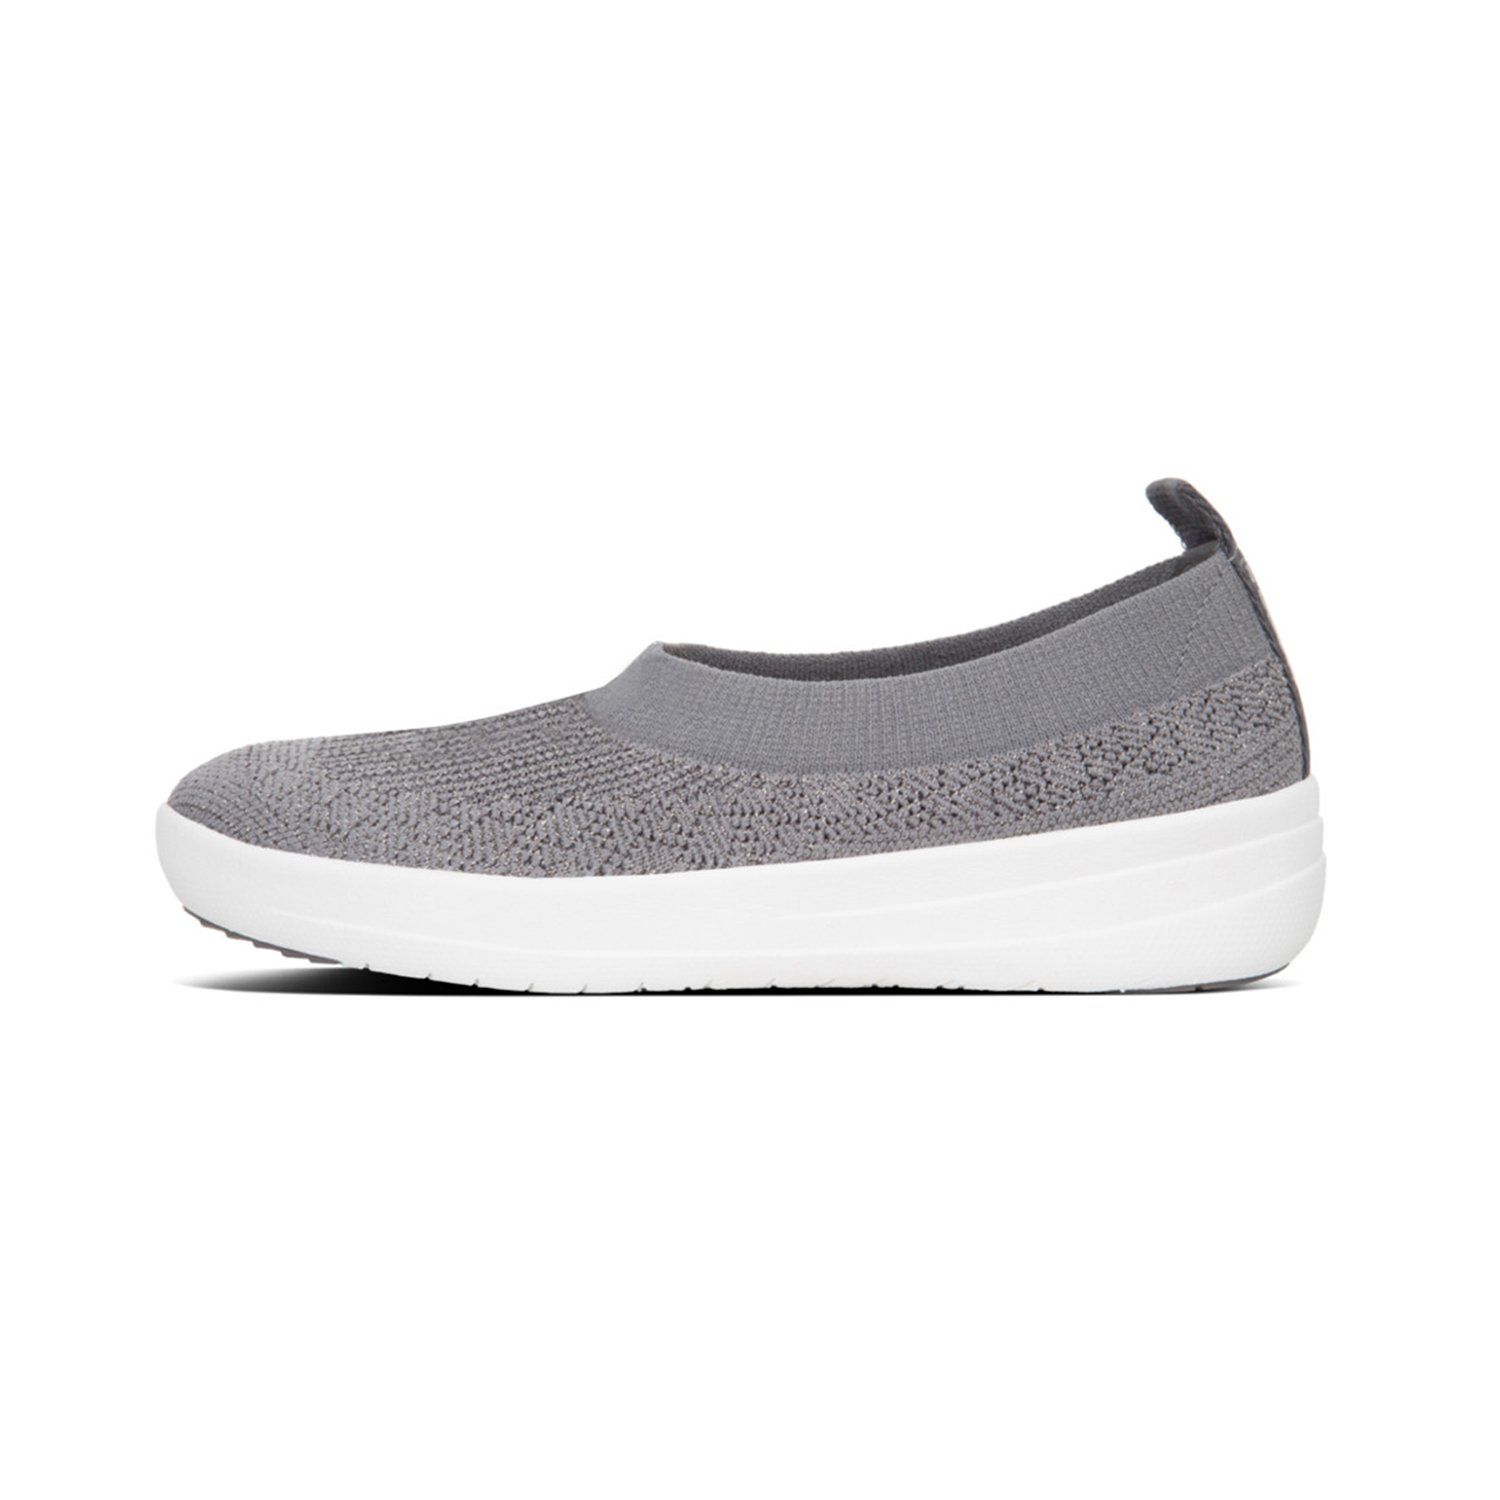 Women's FitFlop, B076648599 Uberknit Slip on Shoes B076648599 FitFlop, Walking 380233